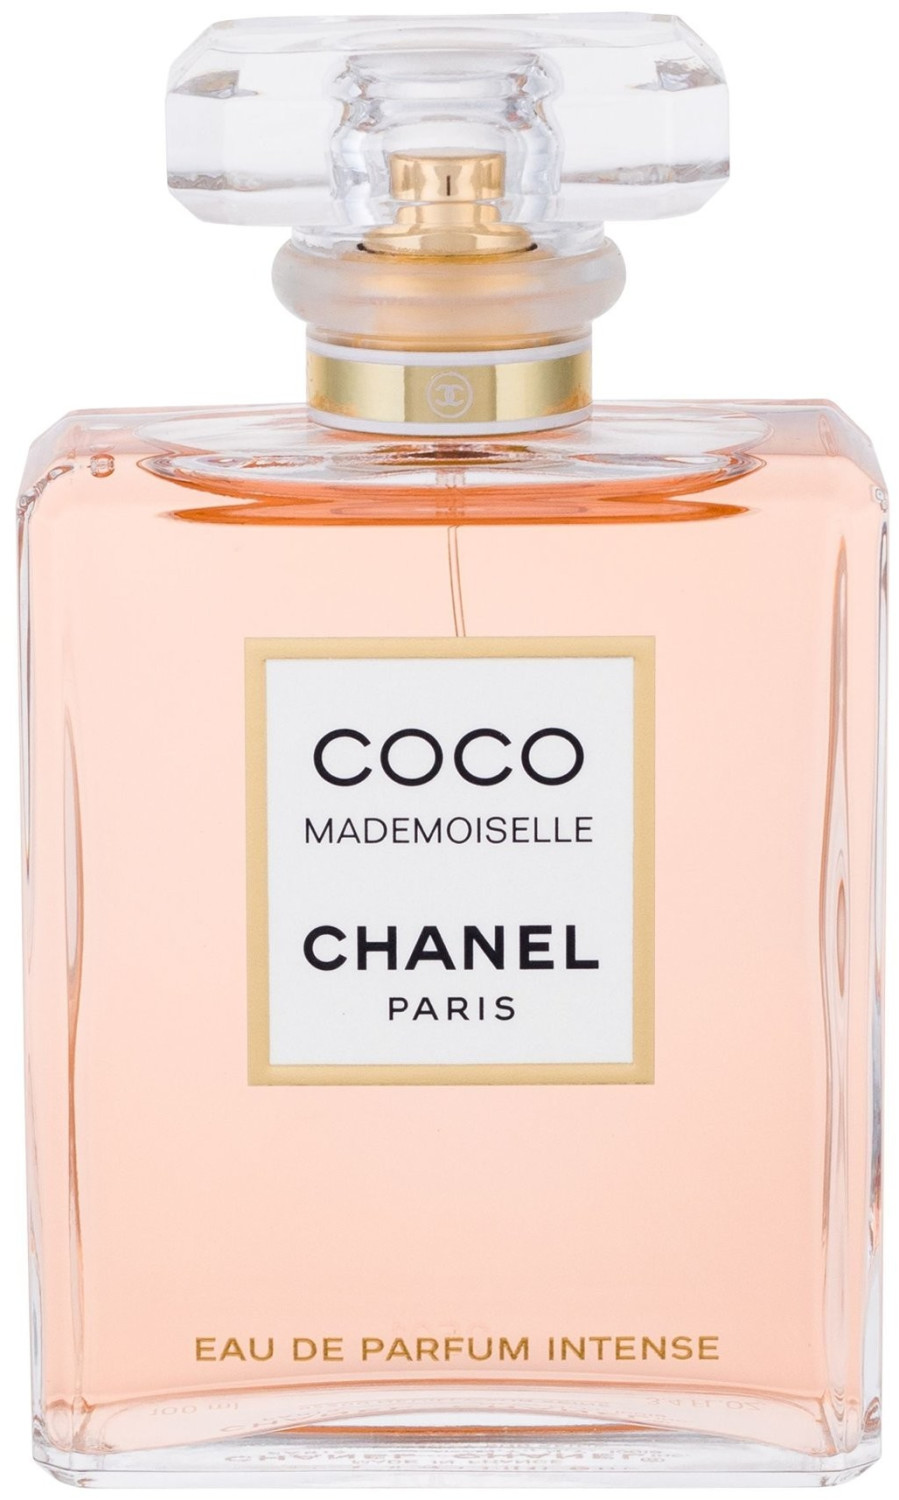 Image of Chanel Coco Mademoiselle Intense Eau de Parfum (100ml)